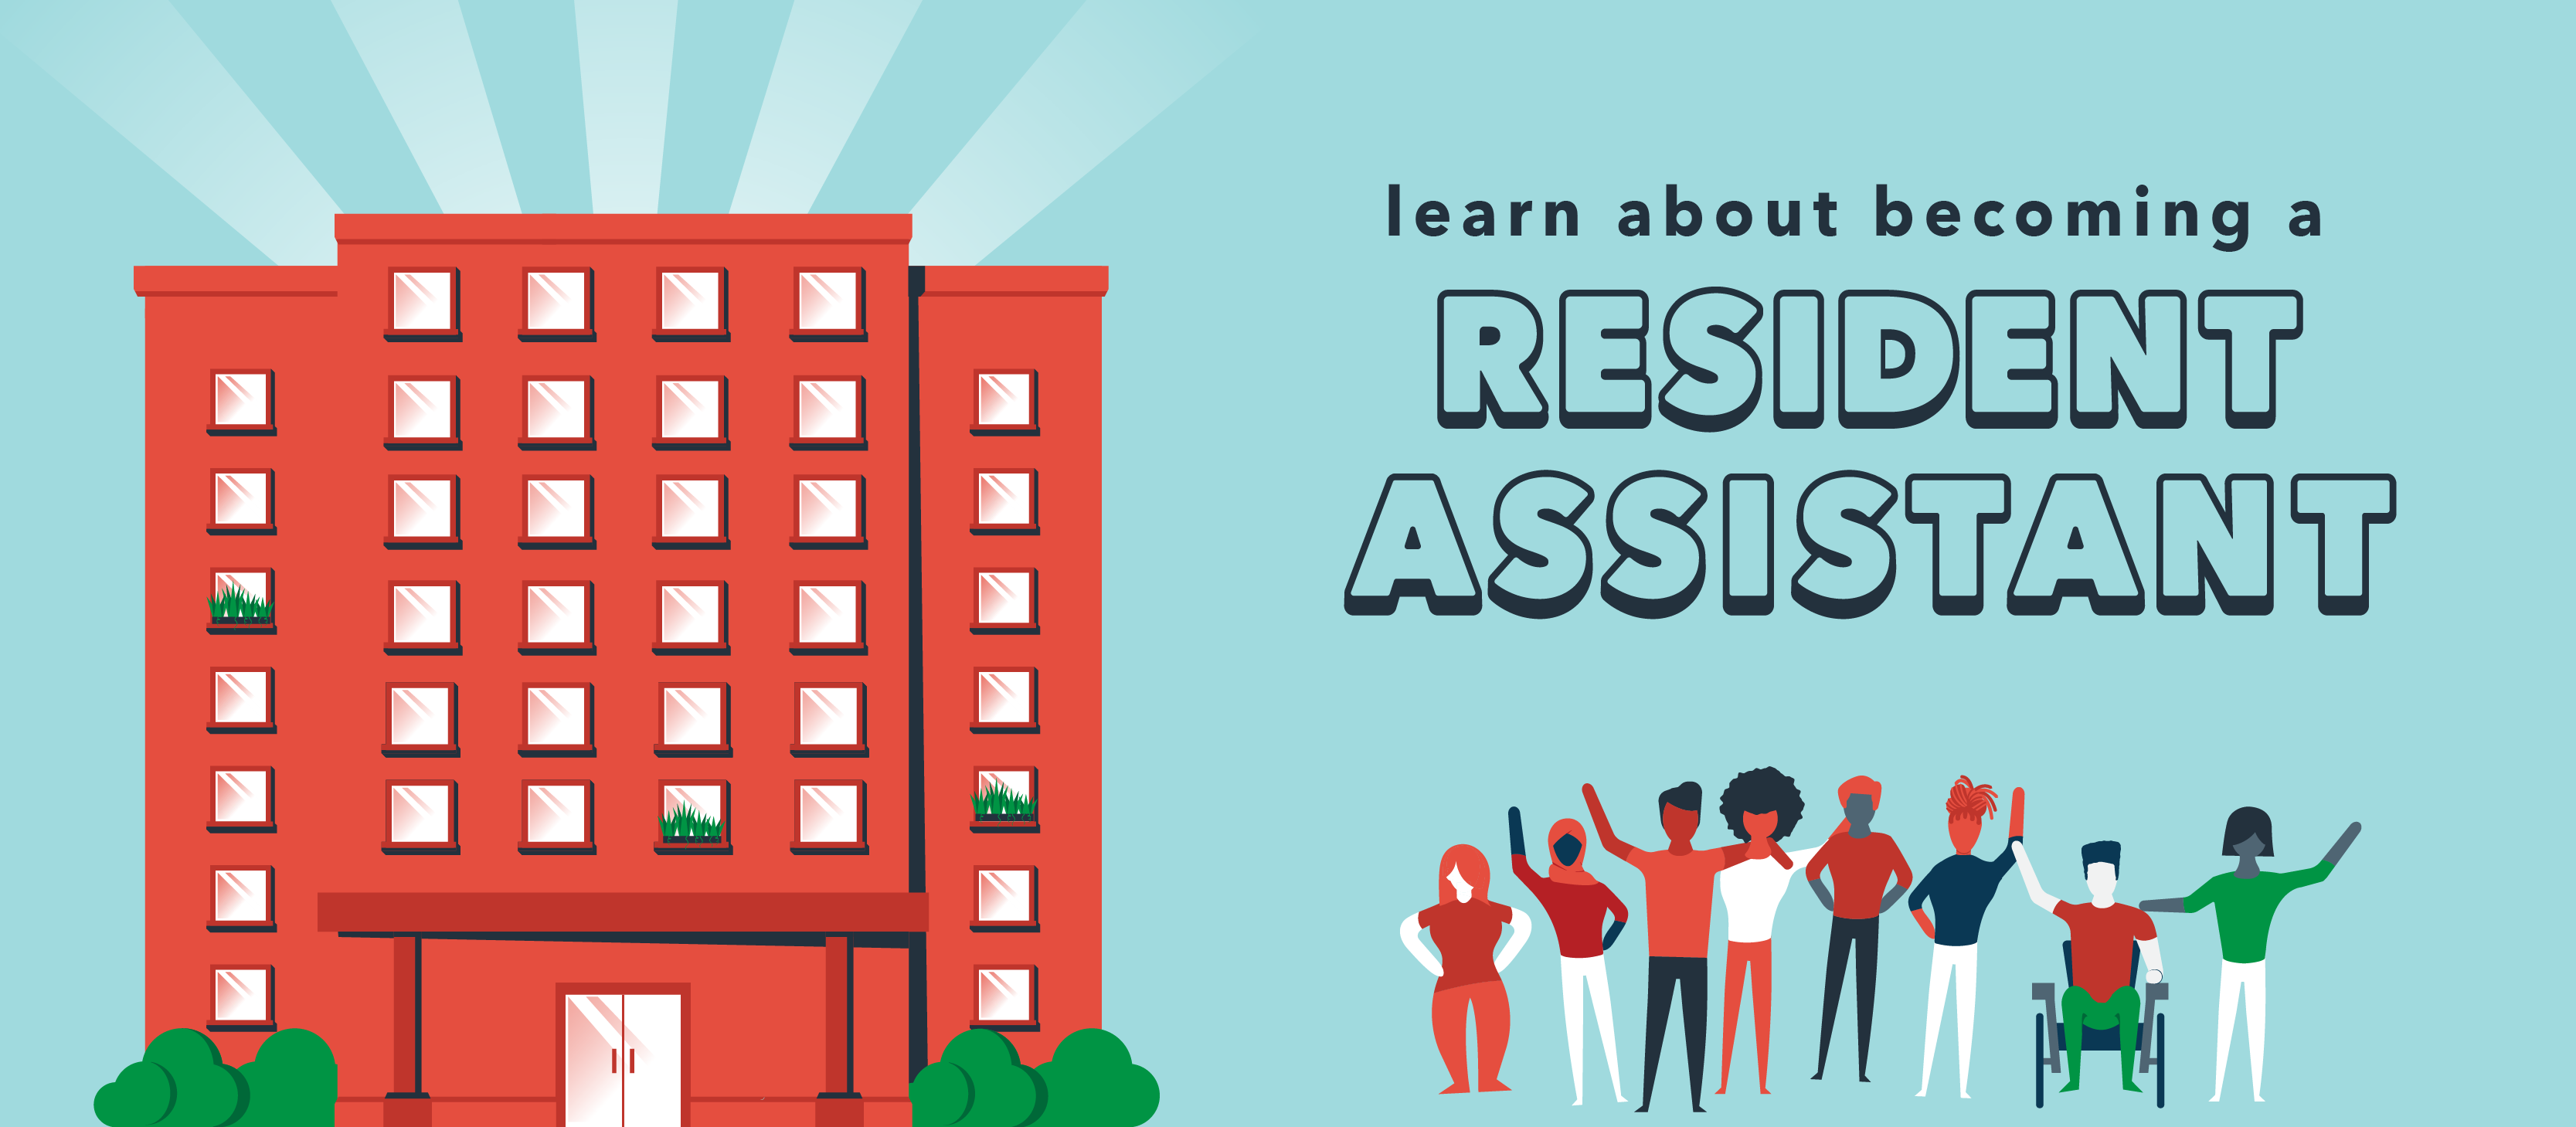 Rutgers Academic Calendar 2022 23 New Brunswick.Apply To Be A Resident Assistant Residence Life